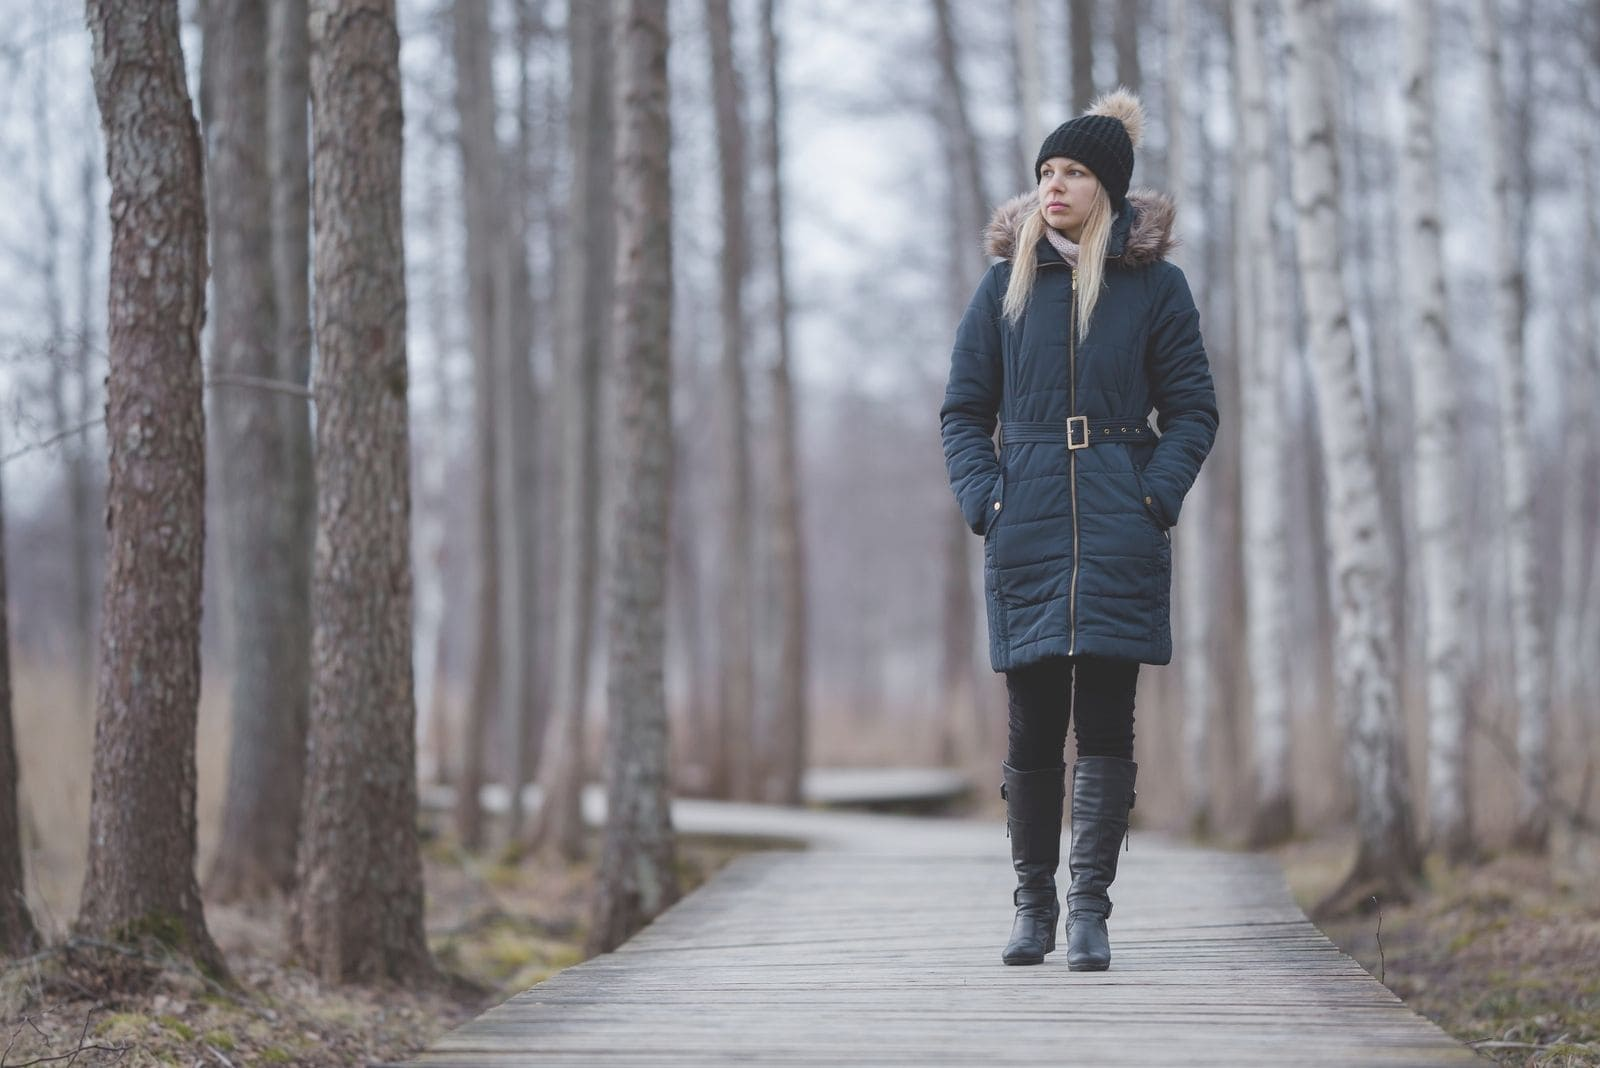 young woman in dark warm clothes walking in wooden trail of a peaceful park